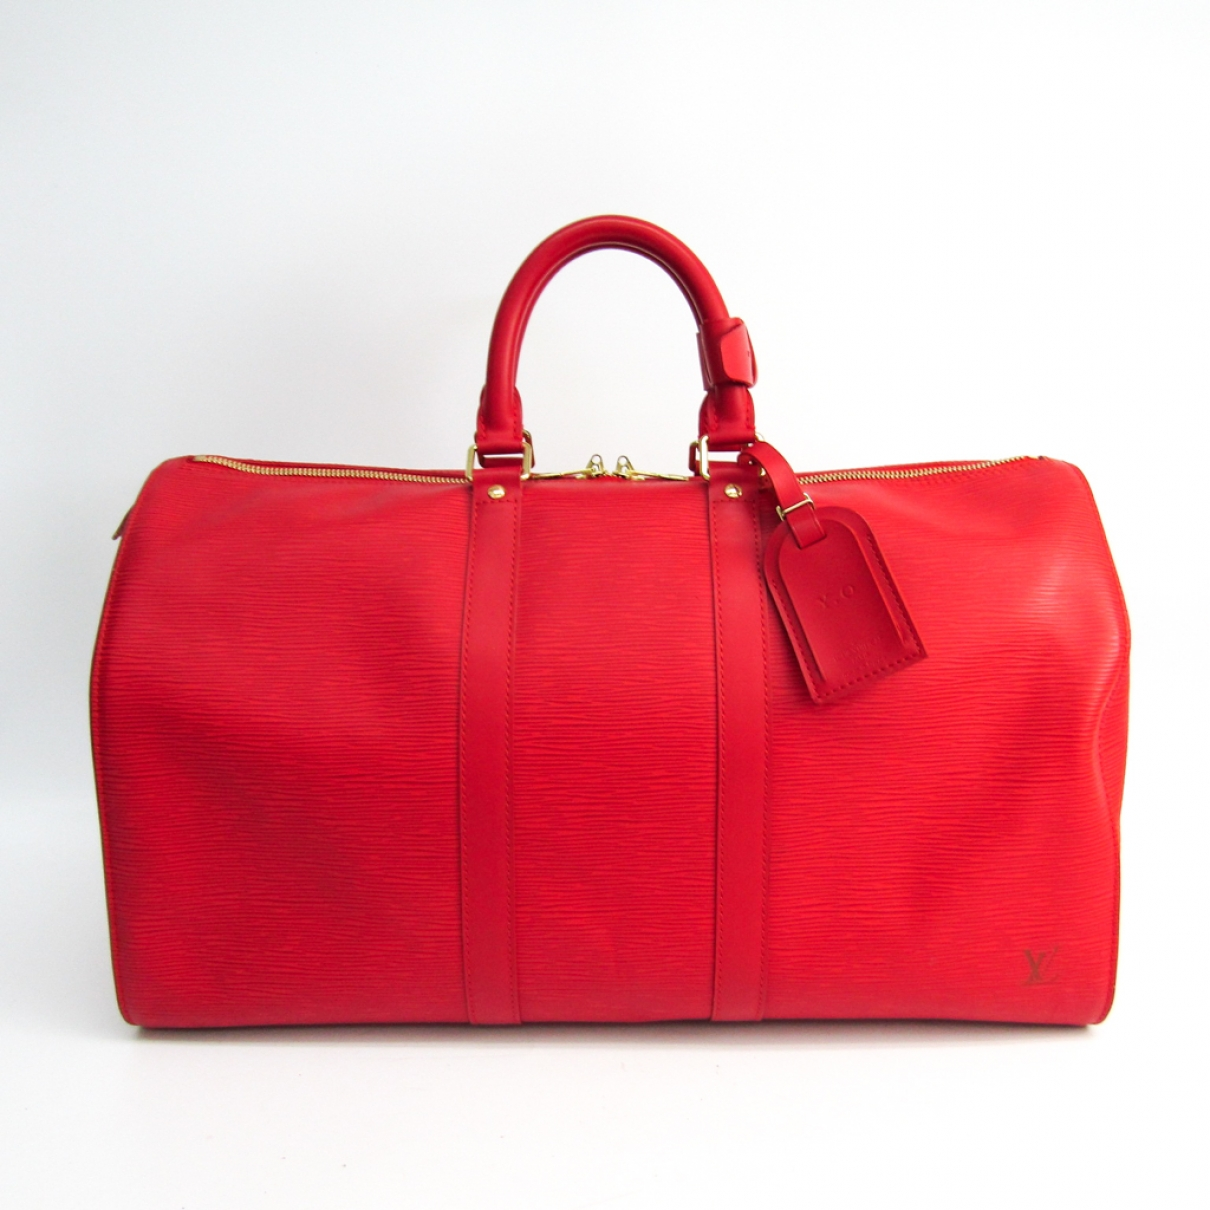 Louis Vuitton Keepall Red Leather Travel bag for Women \N